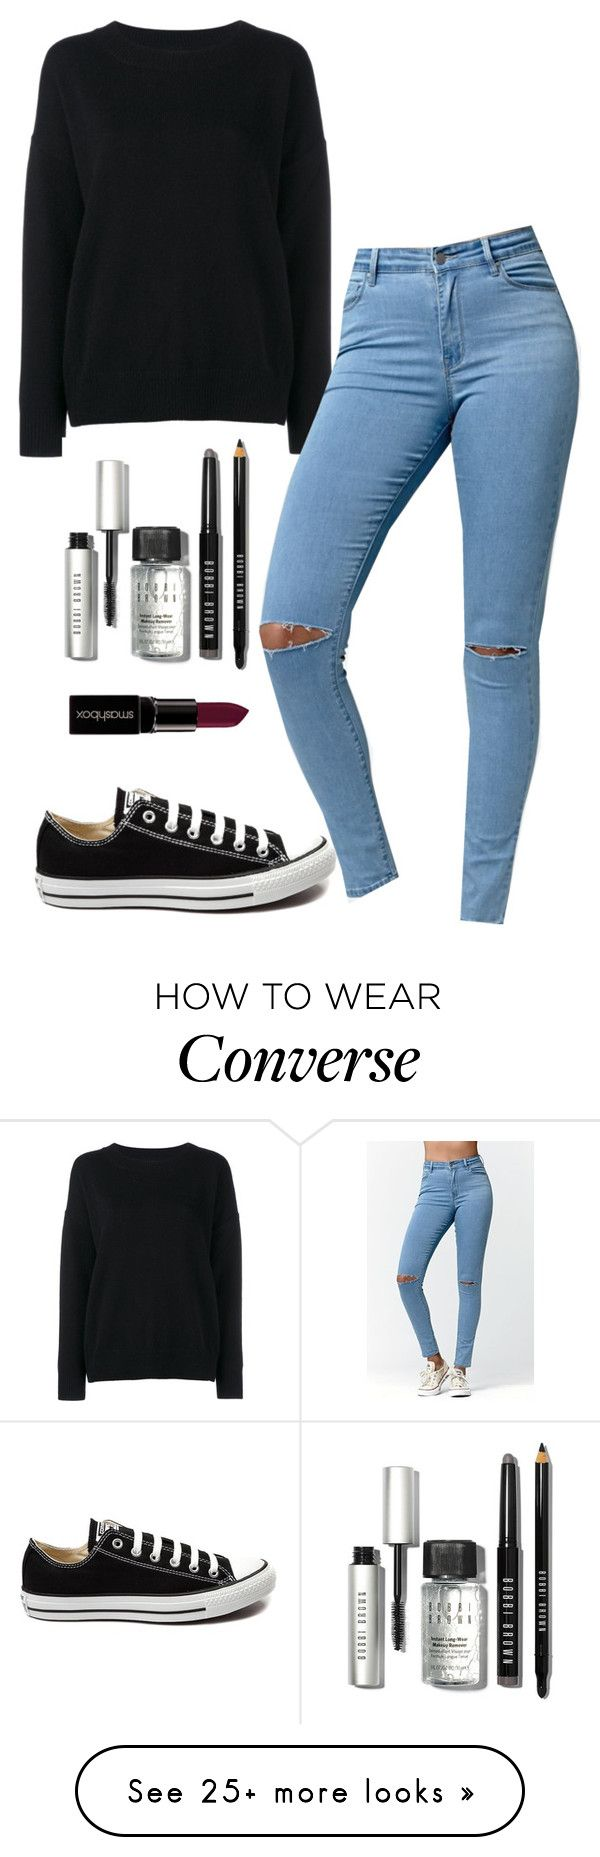 """""""Untitled #251"""" by maya-lm on Polyvore featuring Frame Denim, Bullhead Denim Co., Converse, Bobbi Brown Cosmetics, Smashbox, women's clothing, women, female, woman and misses"""